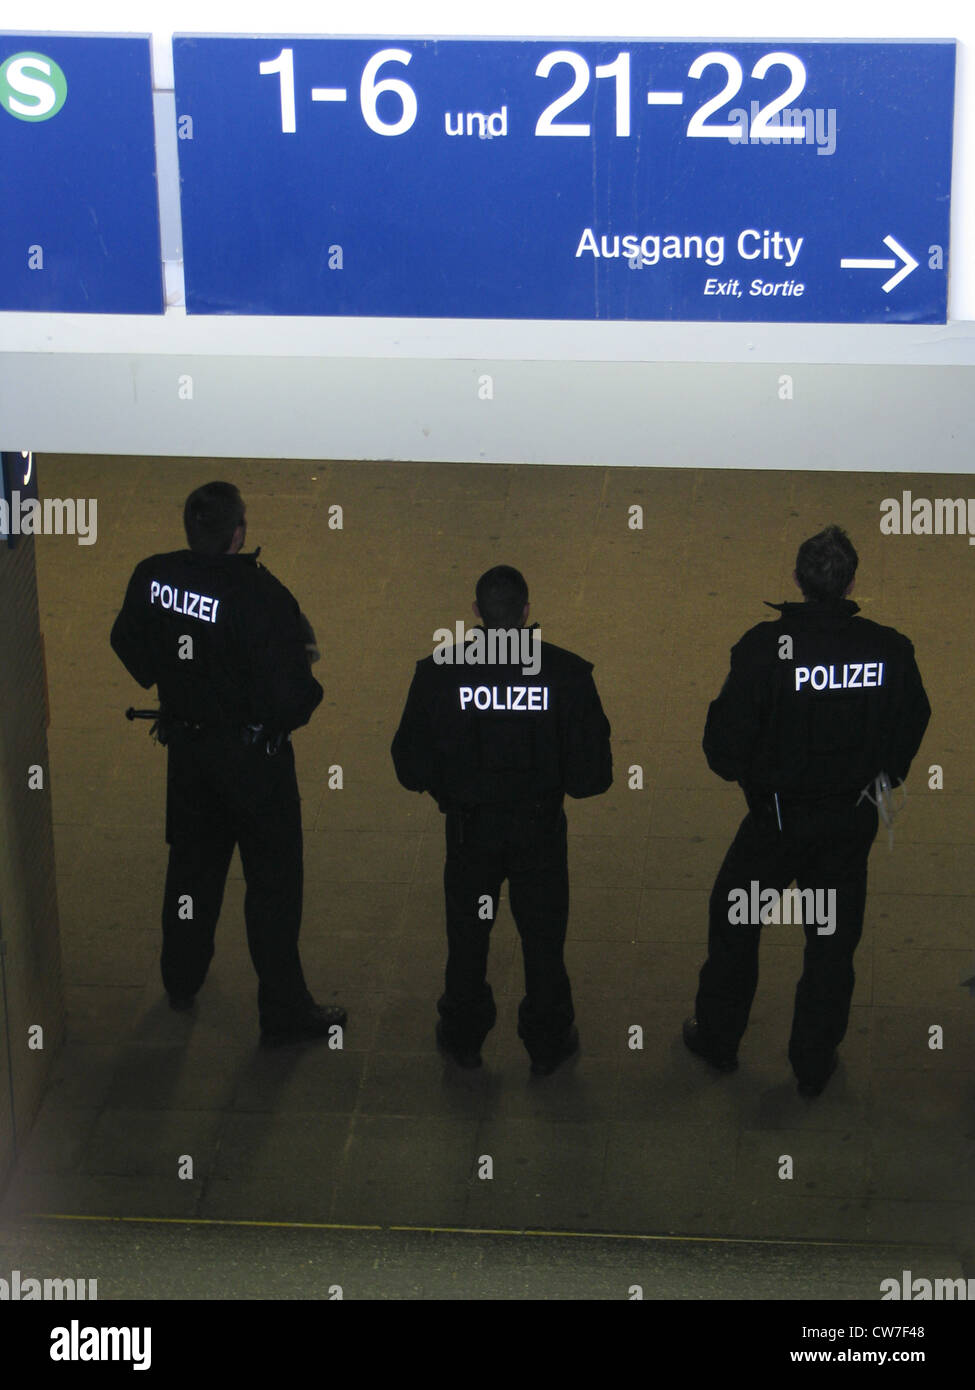 german riot police stockfotos german riot police bilder alamy. Black Bedroom Furniture Sets. Home Design Ideas